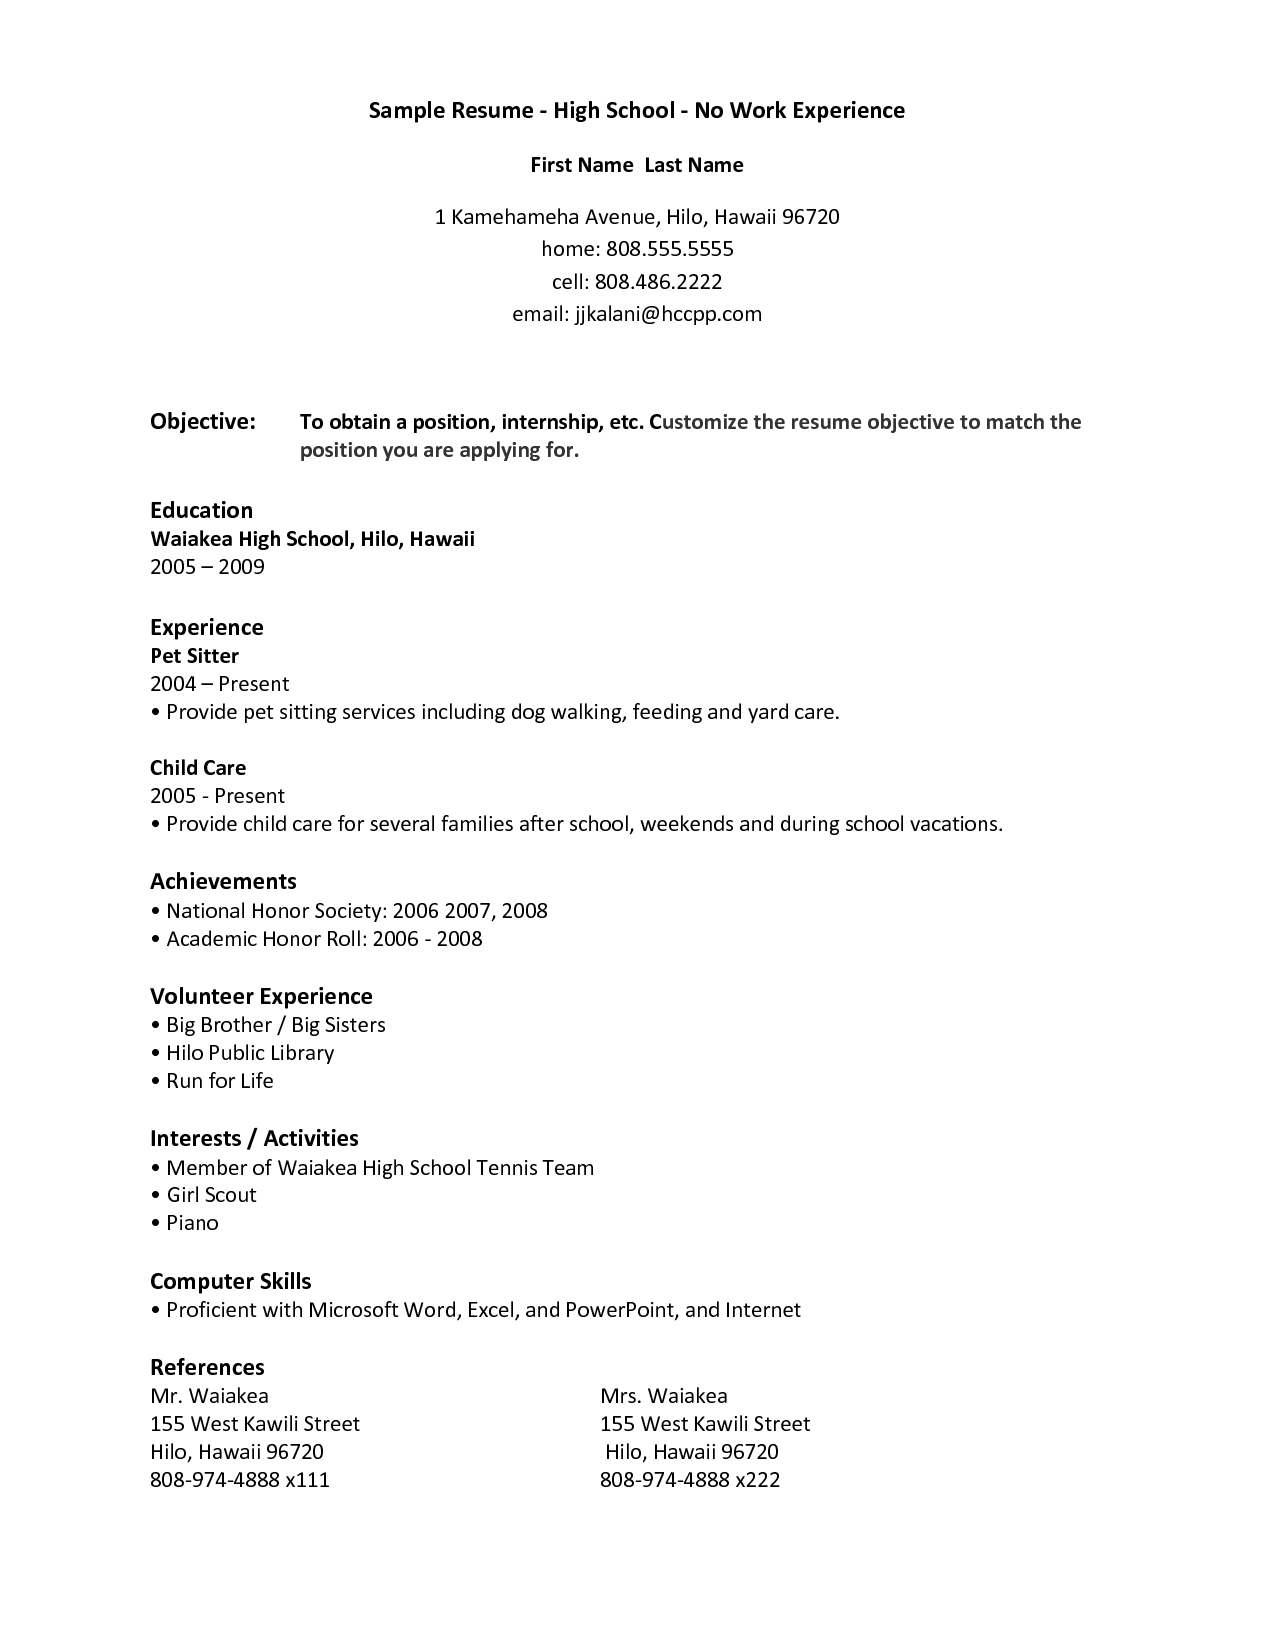 resume samples for highschool students with no work experience